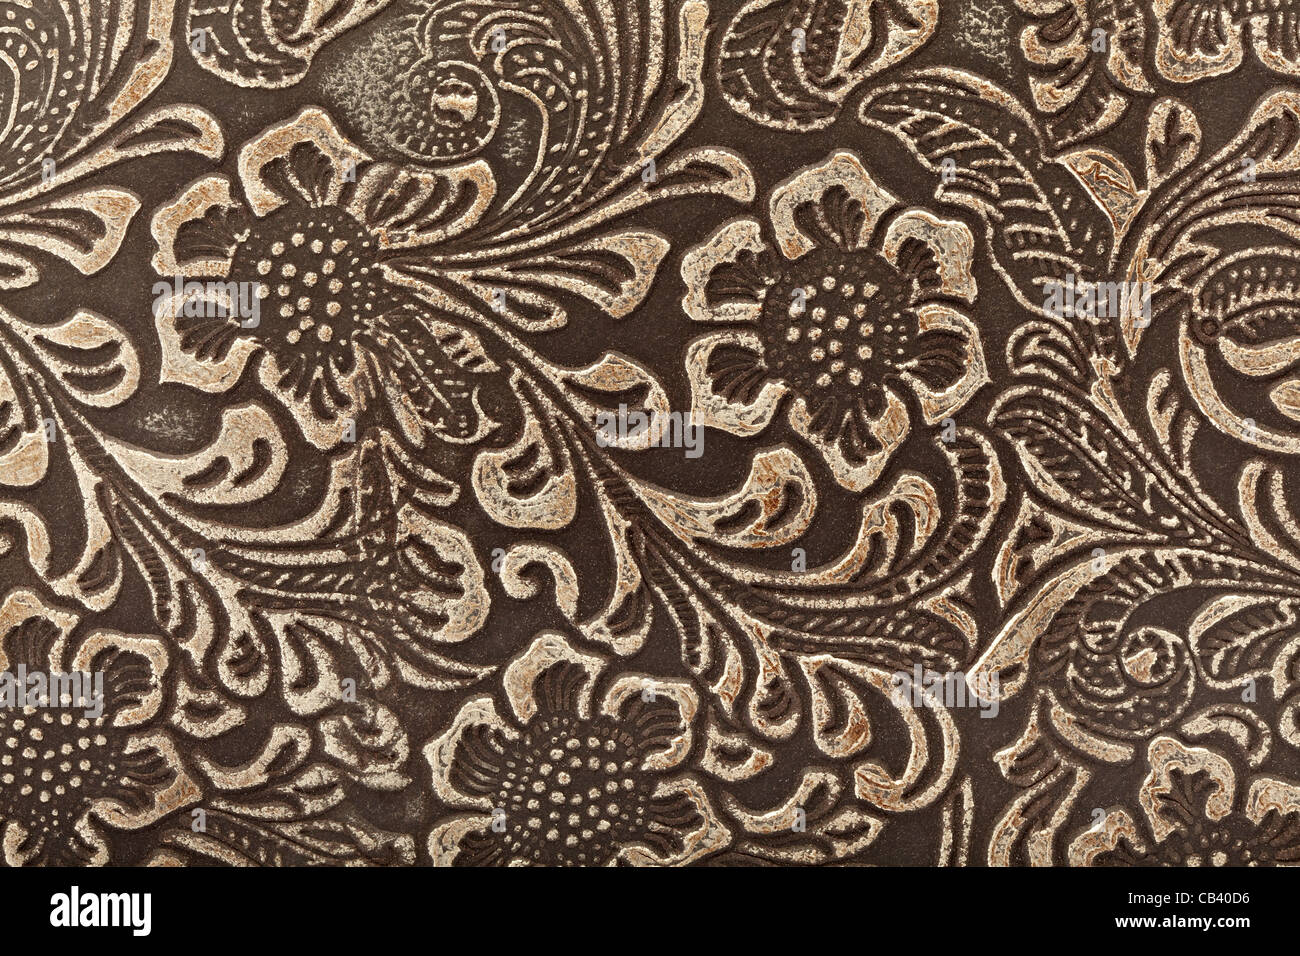 Embossed leather floral pattern background - Stock Image